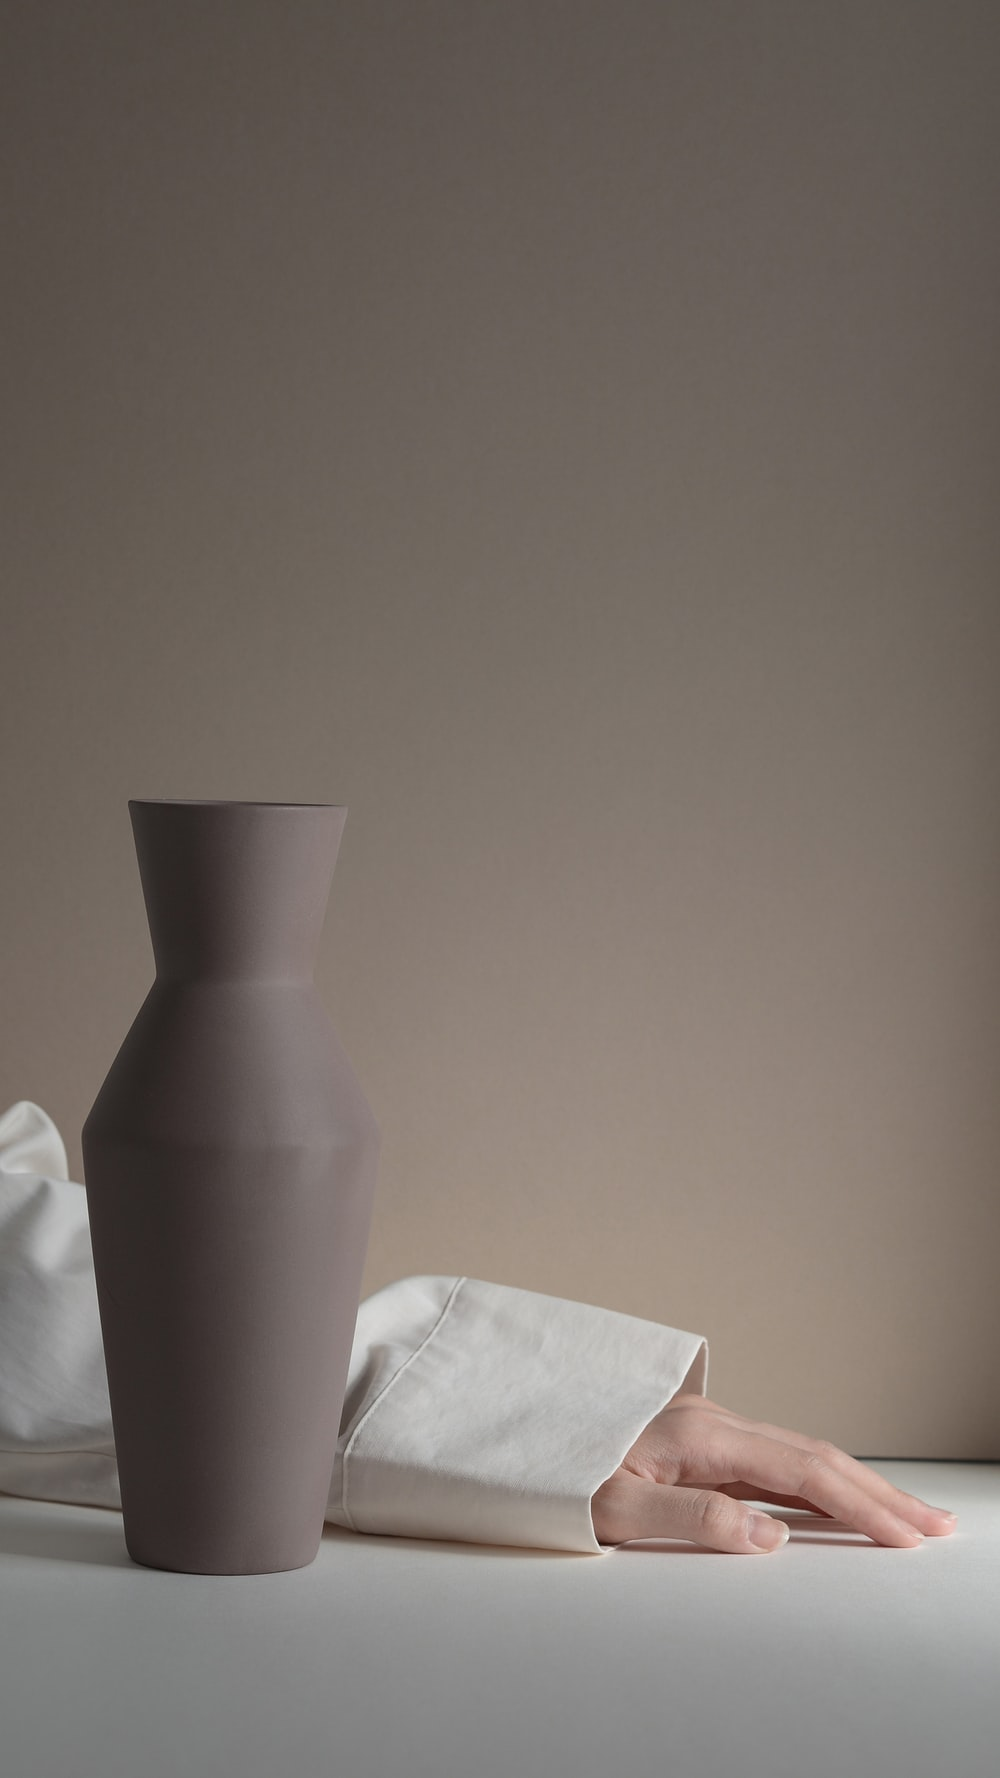 person's hand beside gray vase